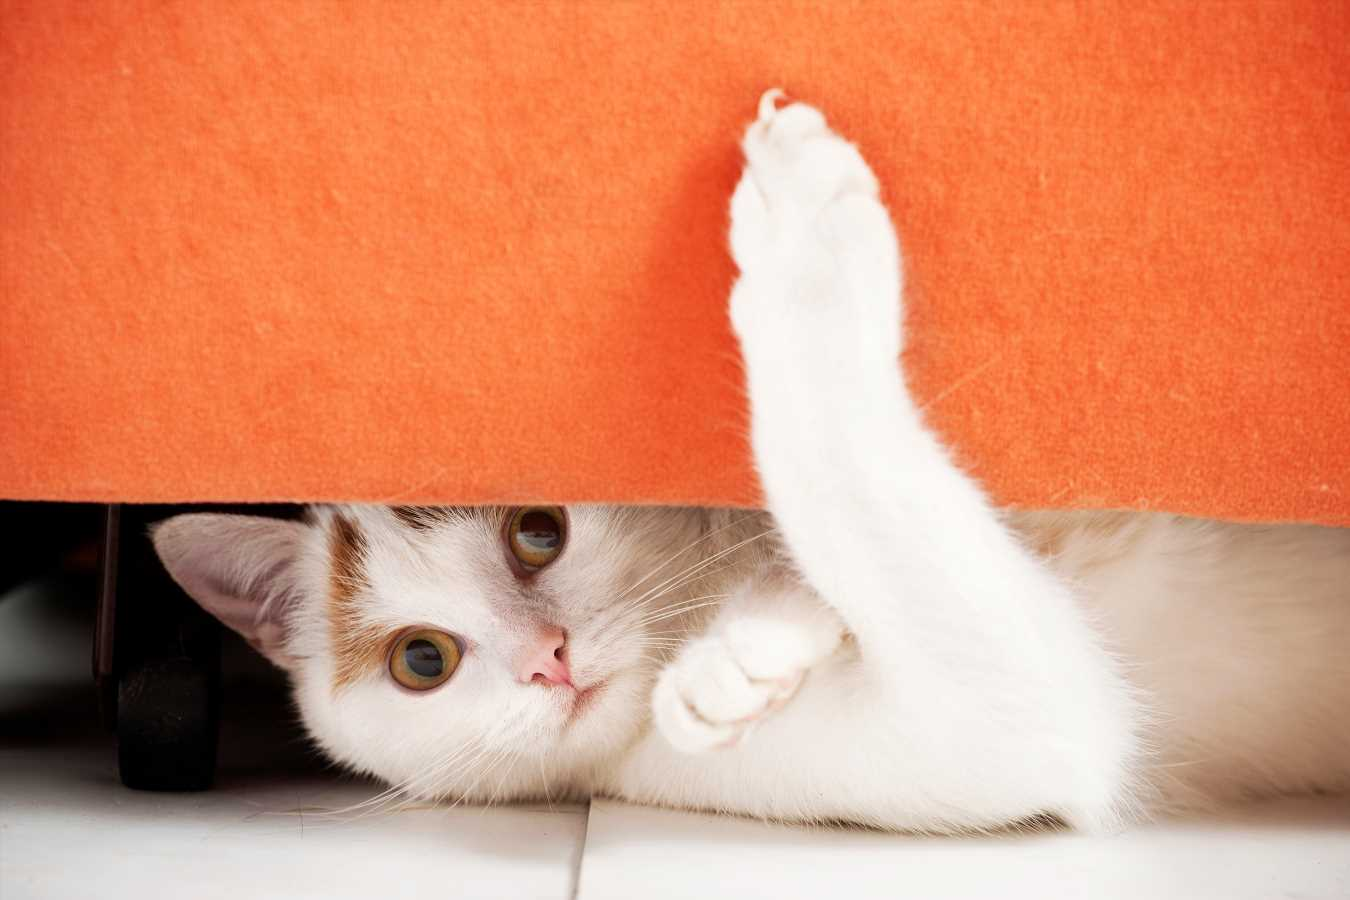 Florida Could Become the Second State to Ban the Declawing of Cats